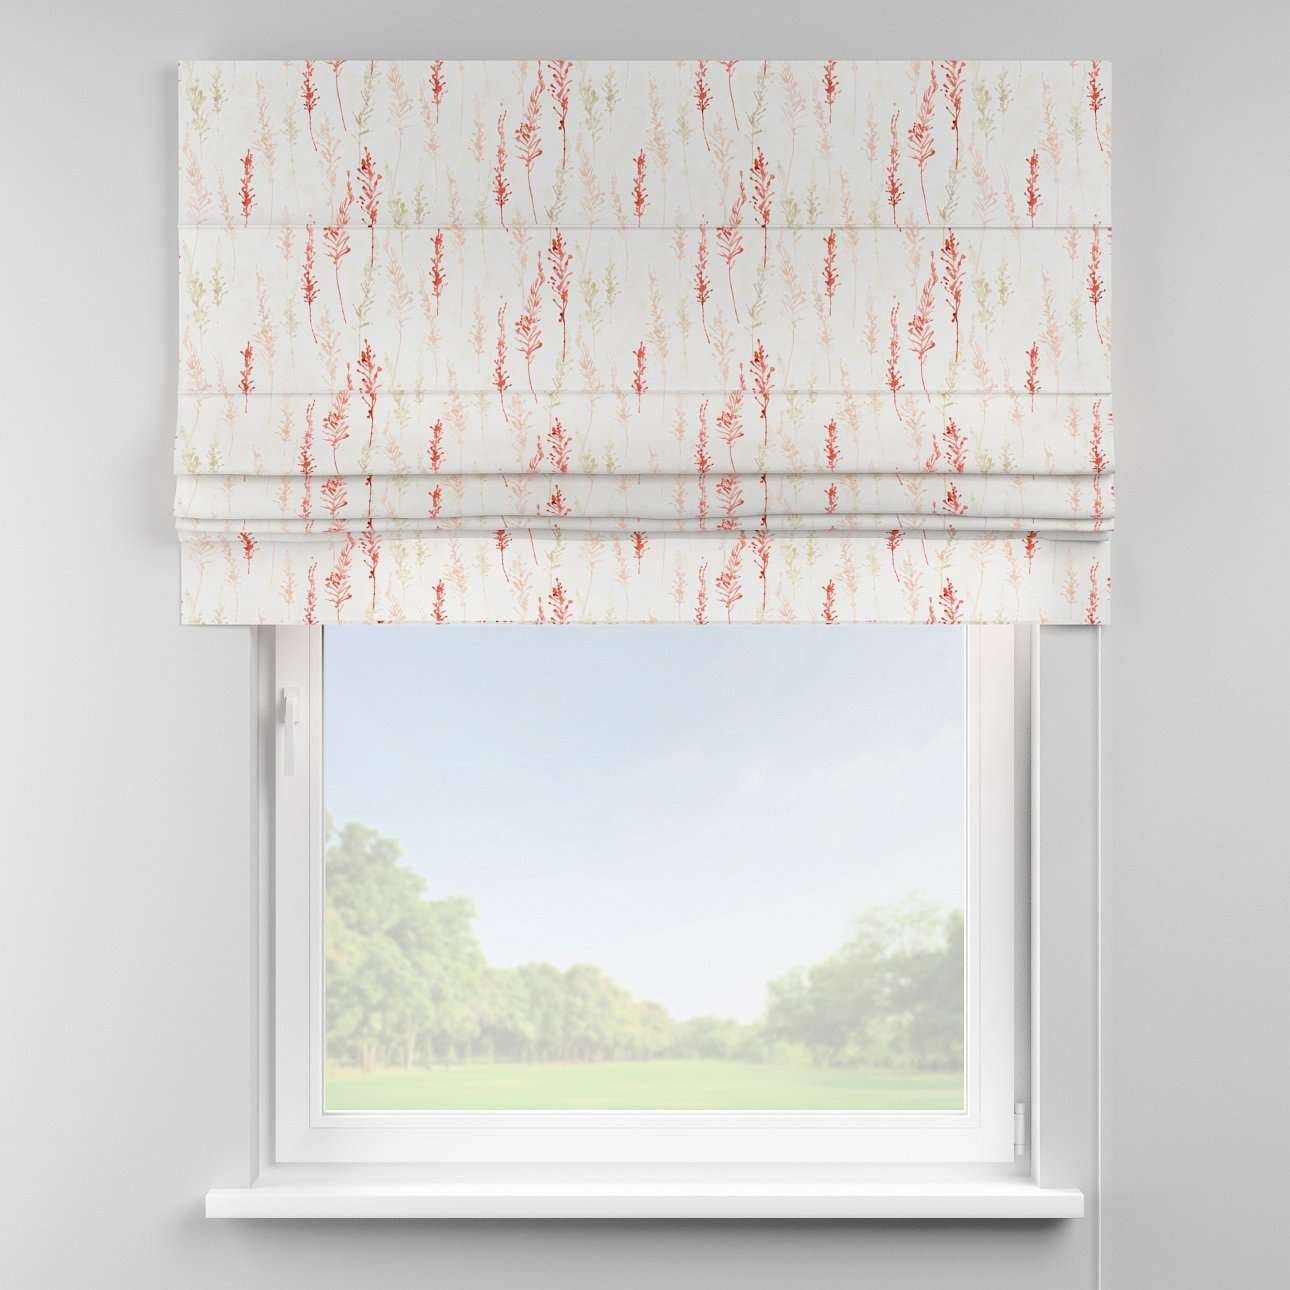 Padva roman blind  in collection Acapulco, fabric: 141-37